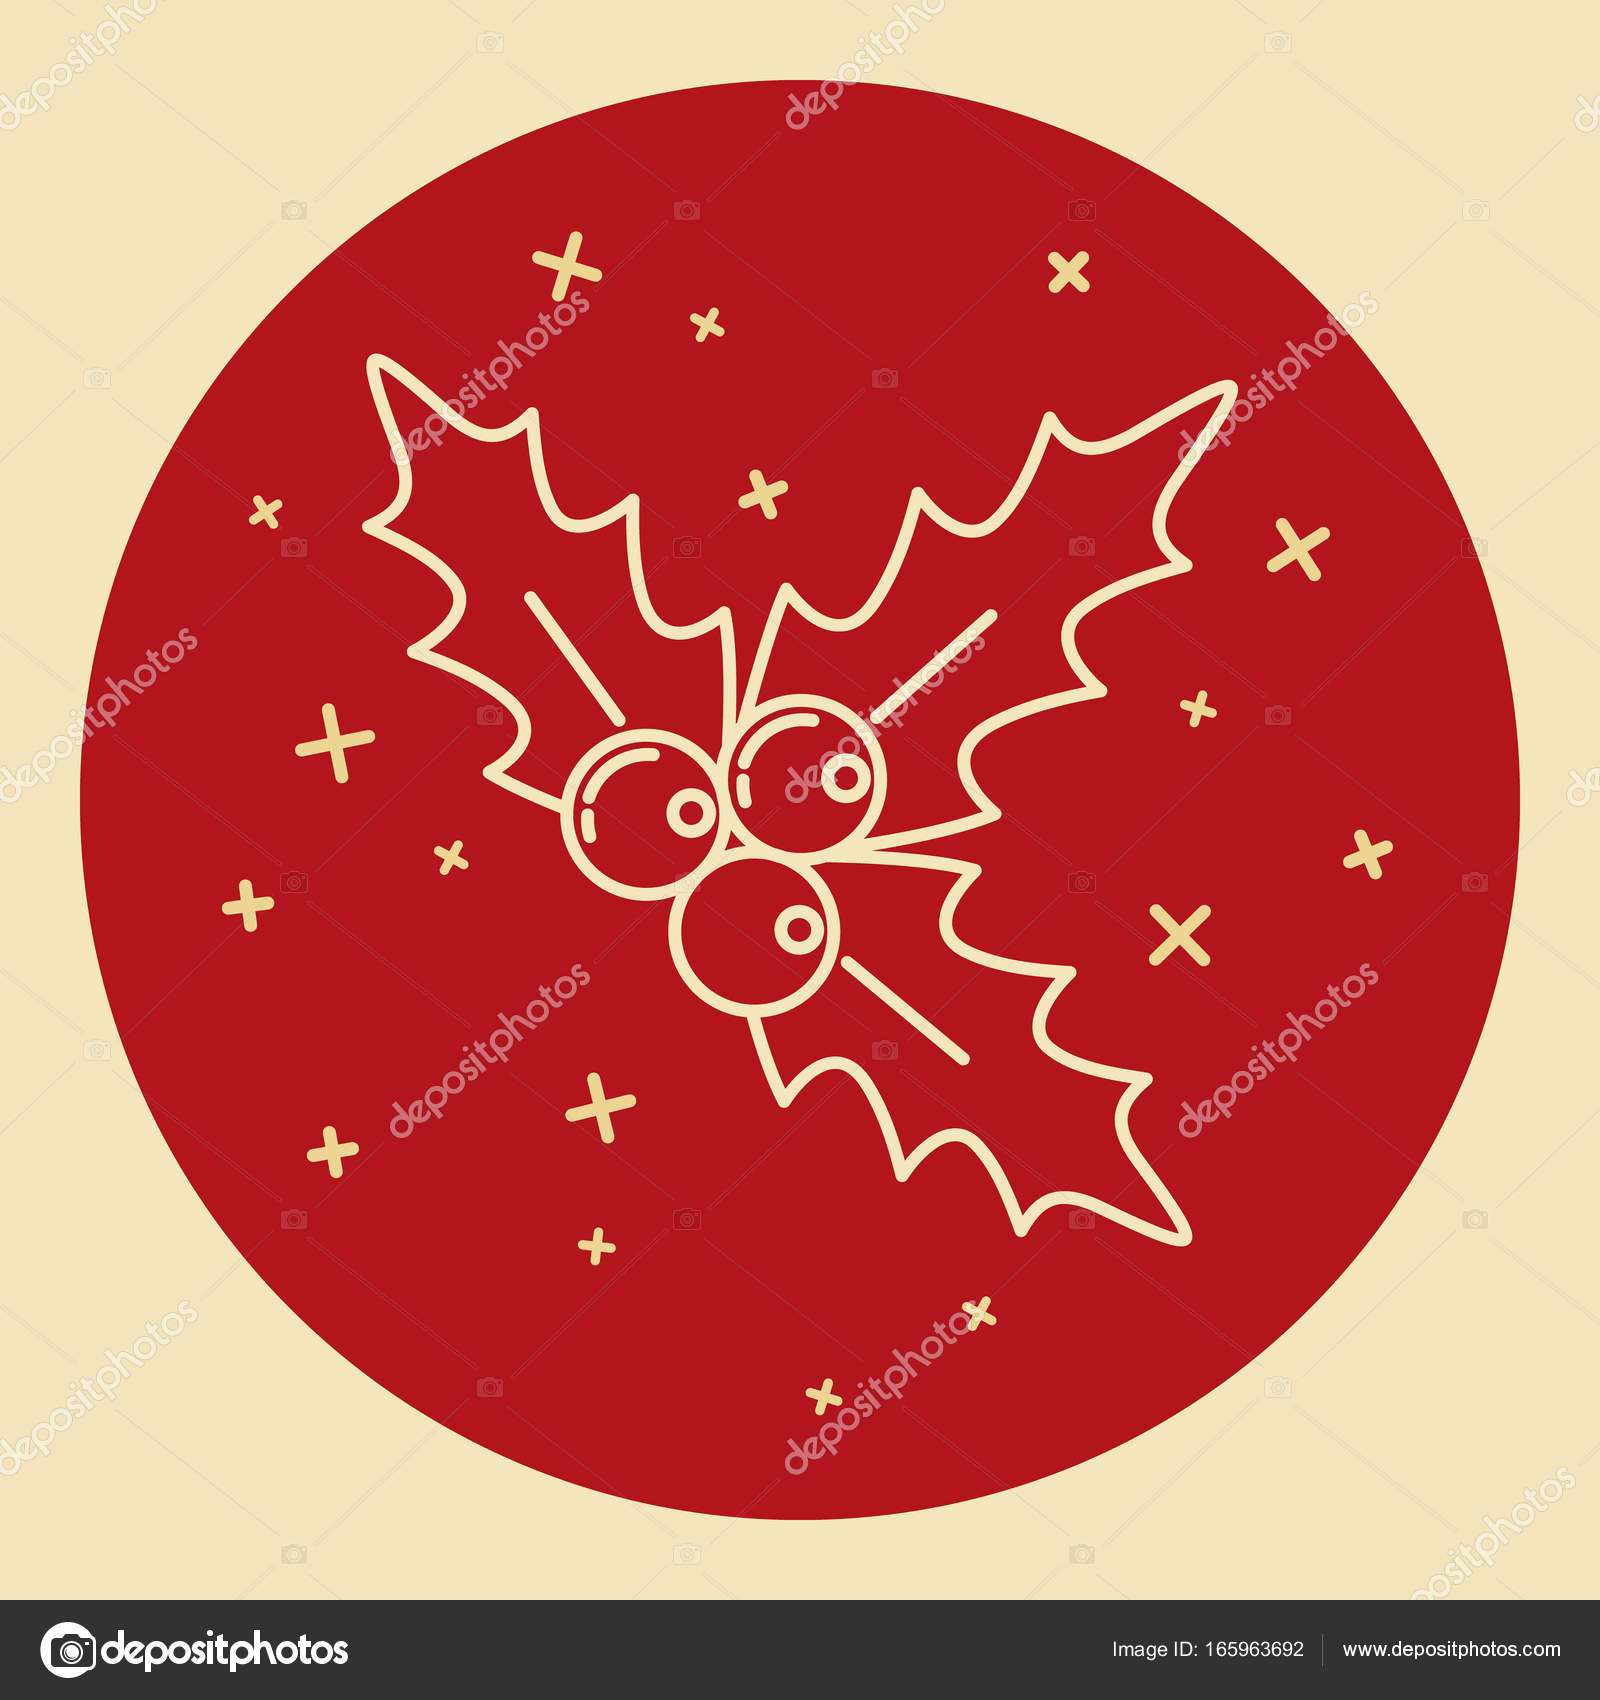 Christmas mistletoe icon in thin line style stock vector christmas mistletoe icon in thin line style traditional holly berry symbol in round frame vector by ekazansk buycottarizona Image collections